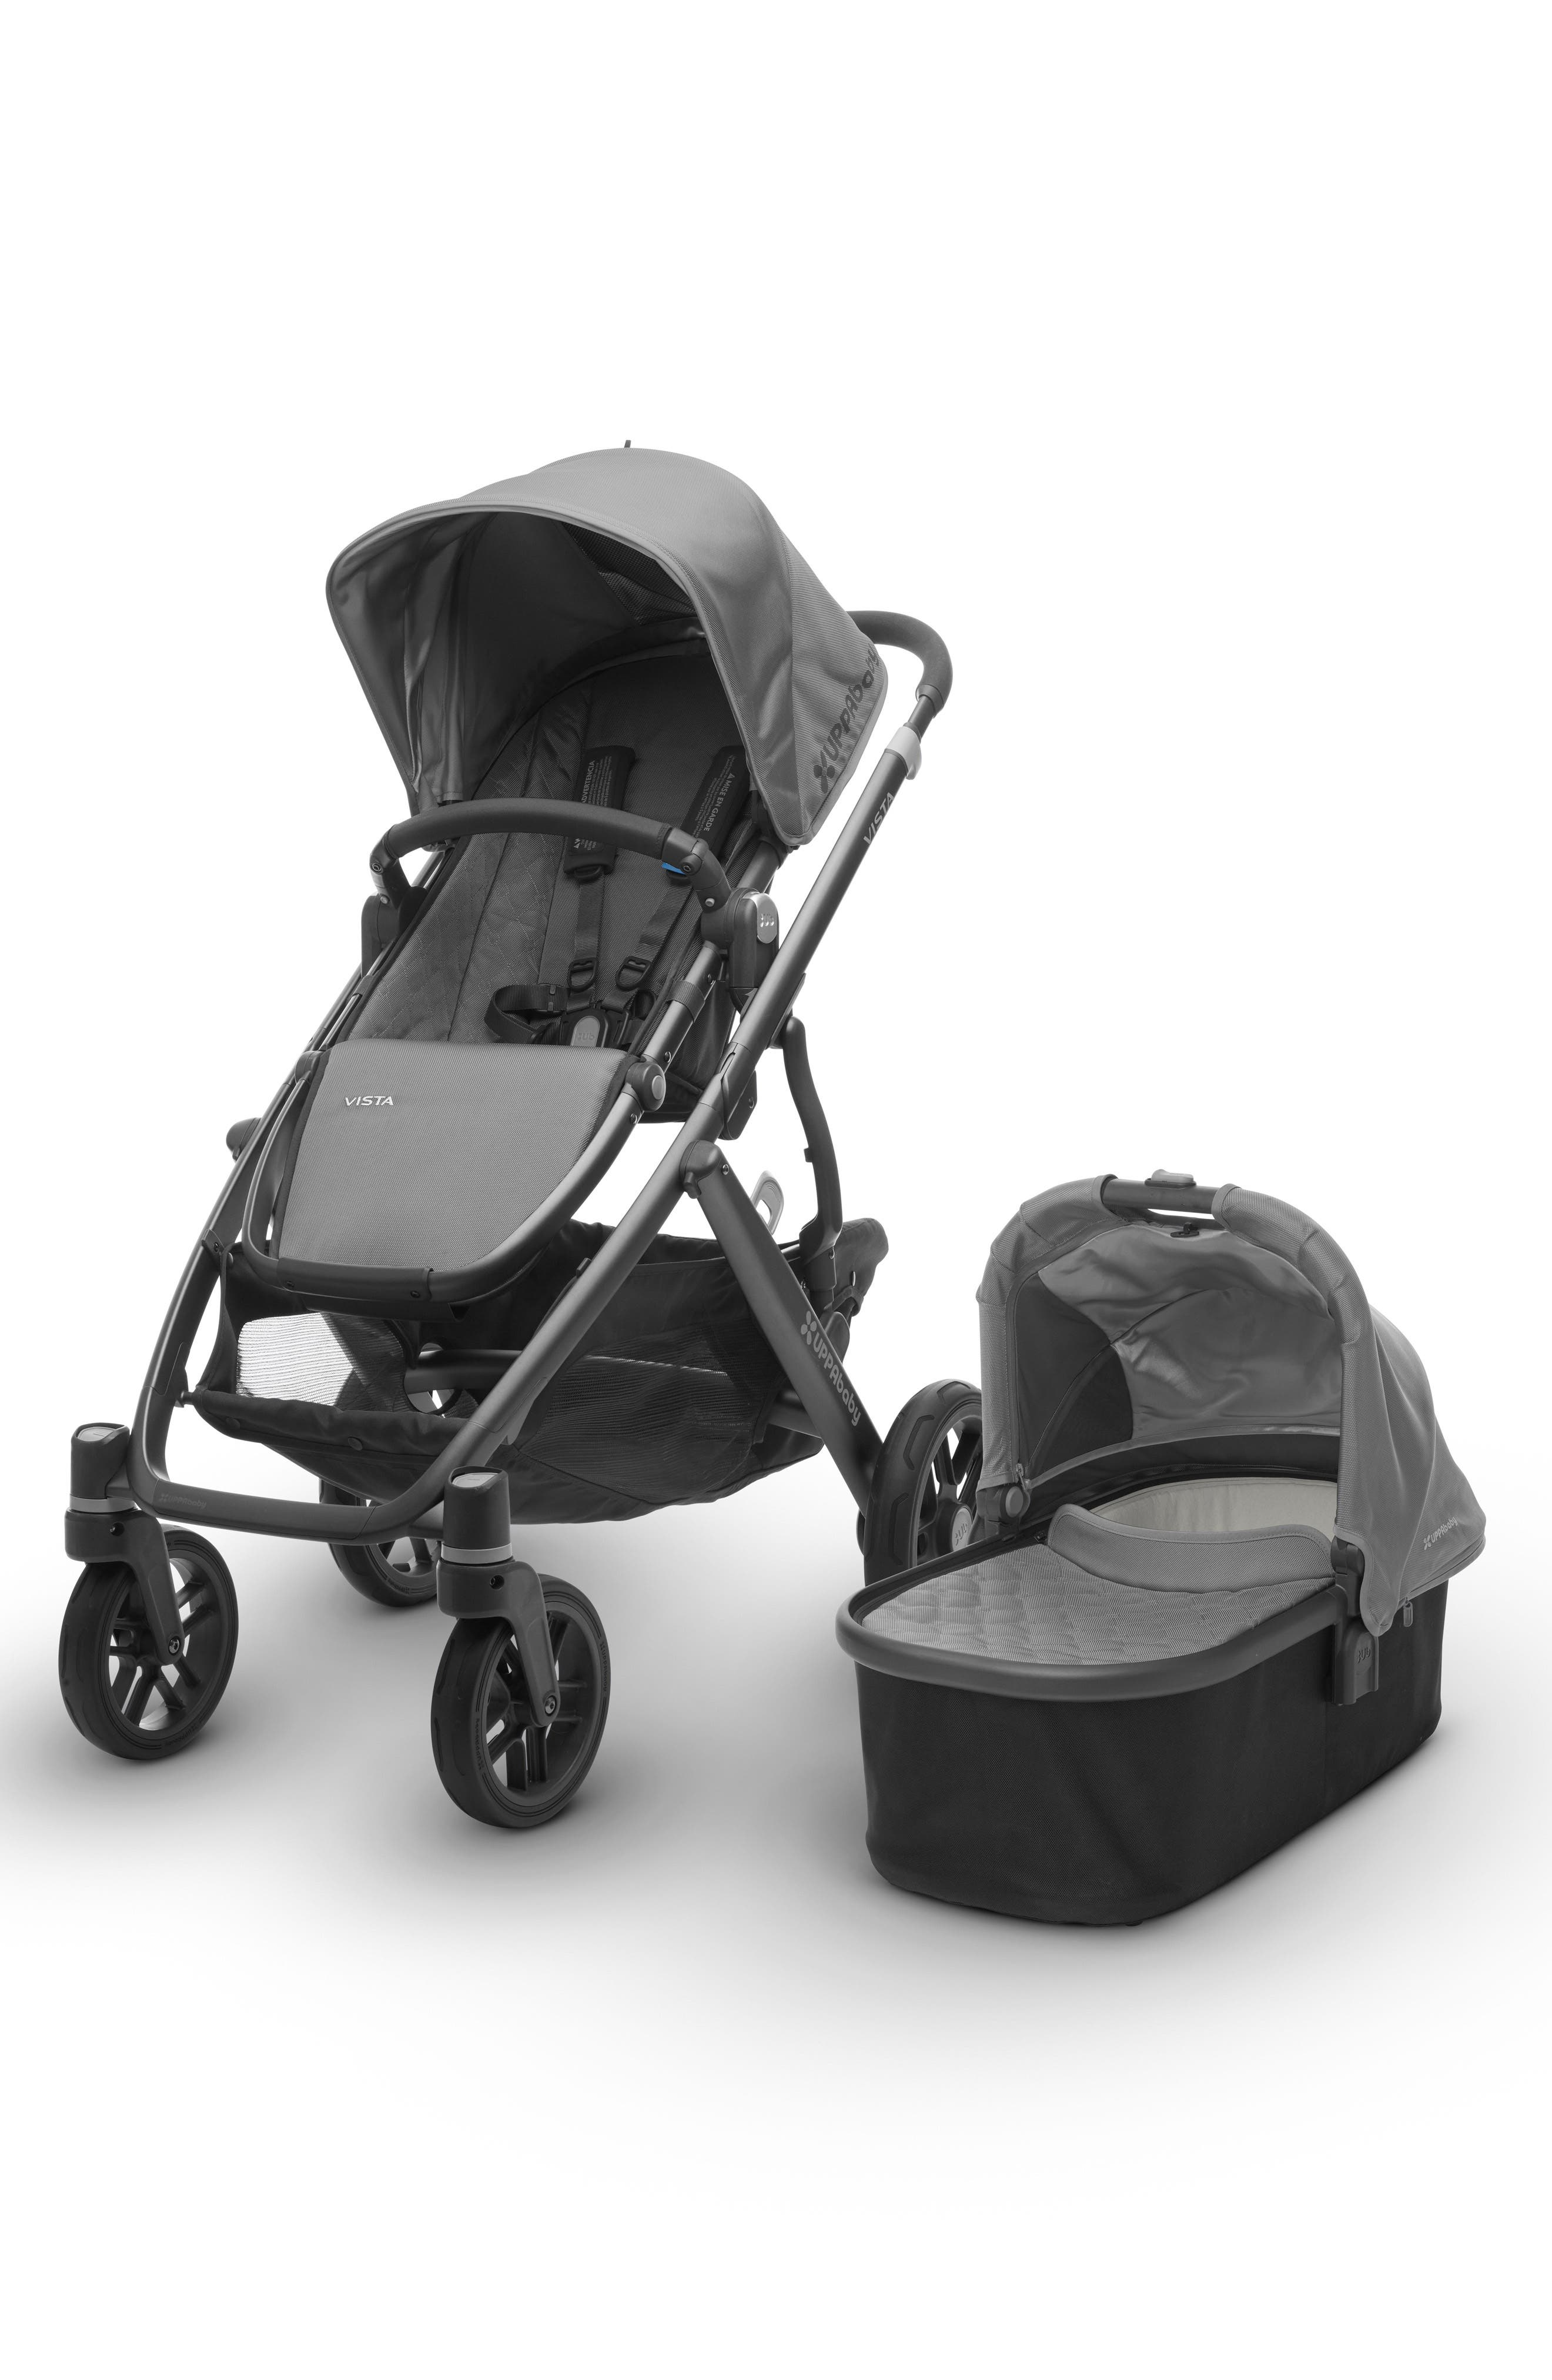 UPPAbaby 2017 VISTA Aluminum Frame Convertible Stroller with Bassinet & Toddler Seat | Nordstrom